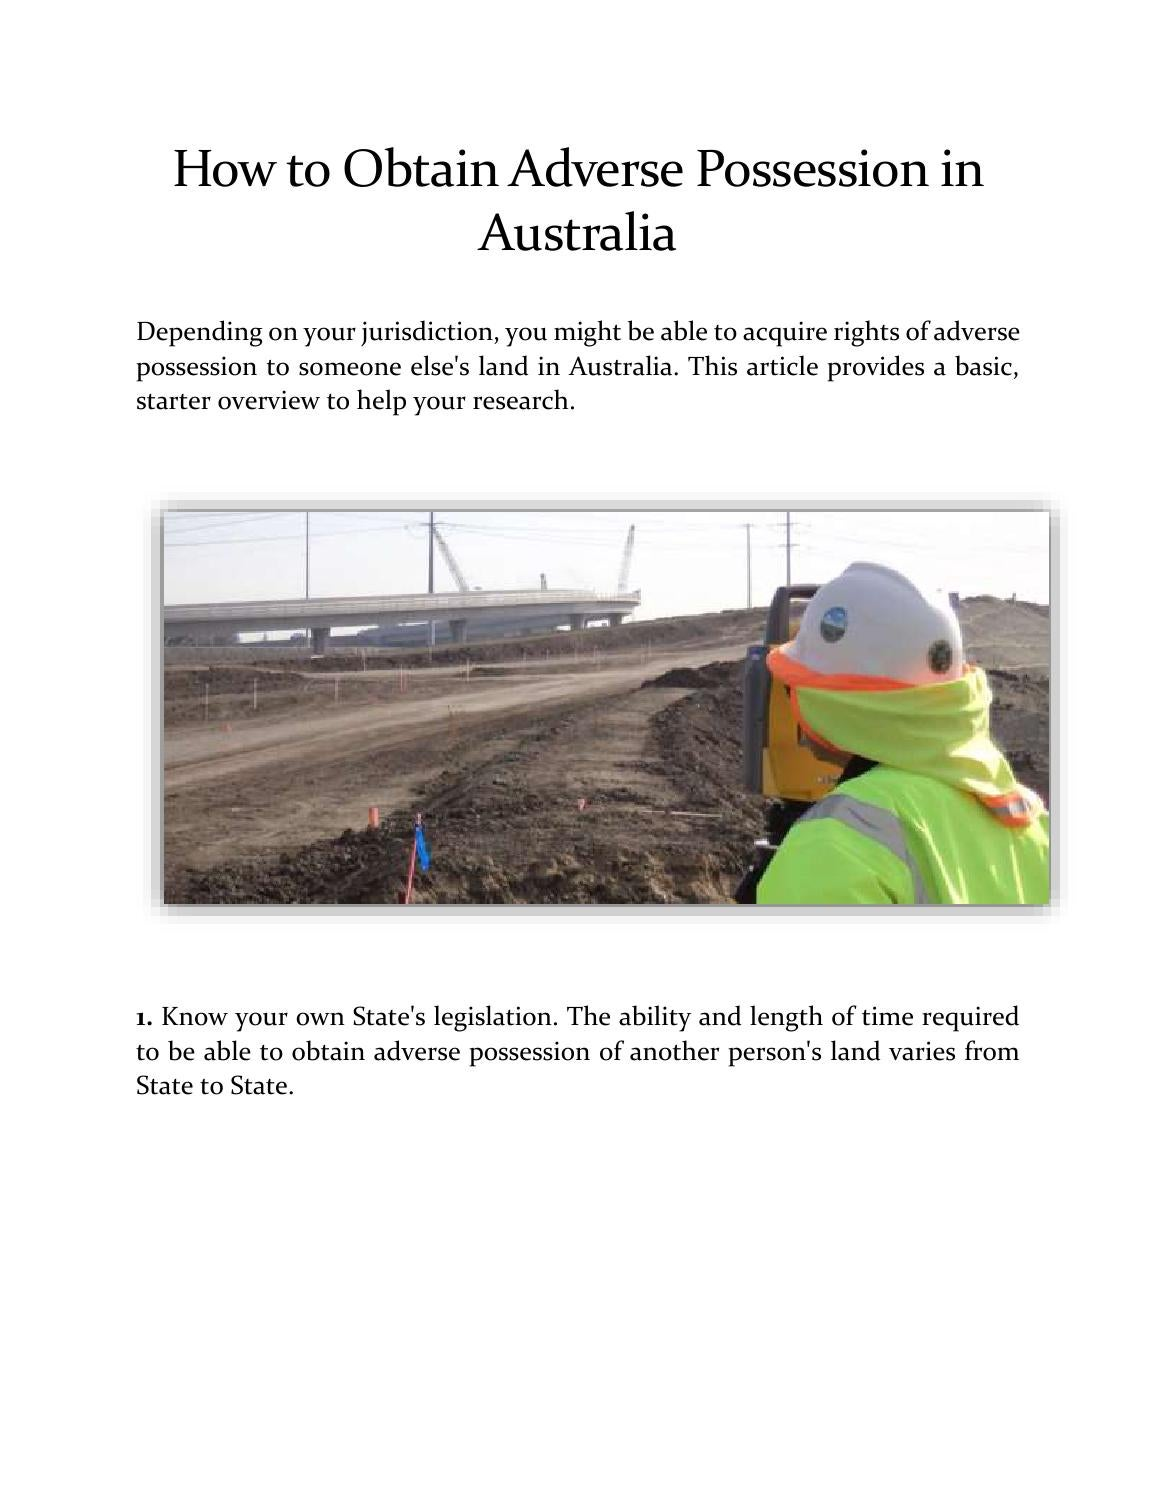 How to Obtain Adverse Possession in Australia